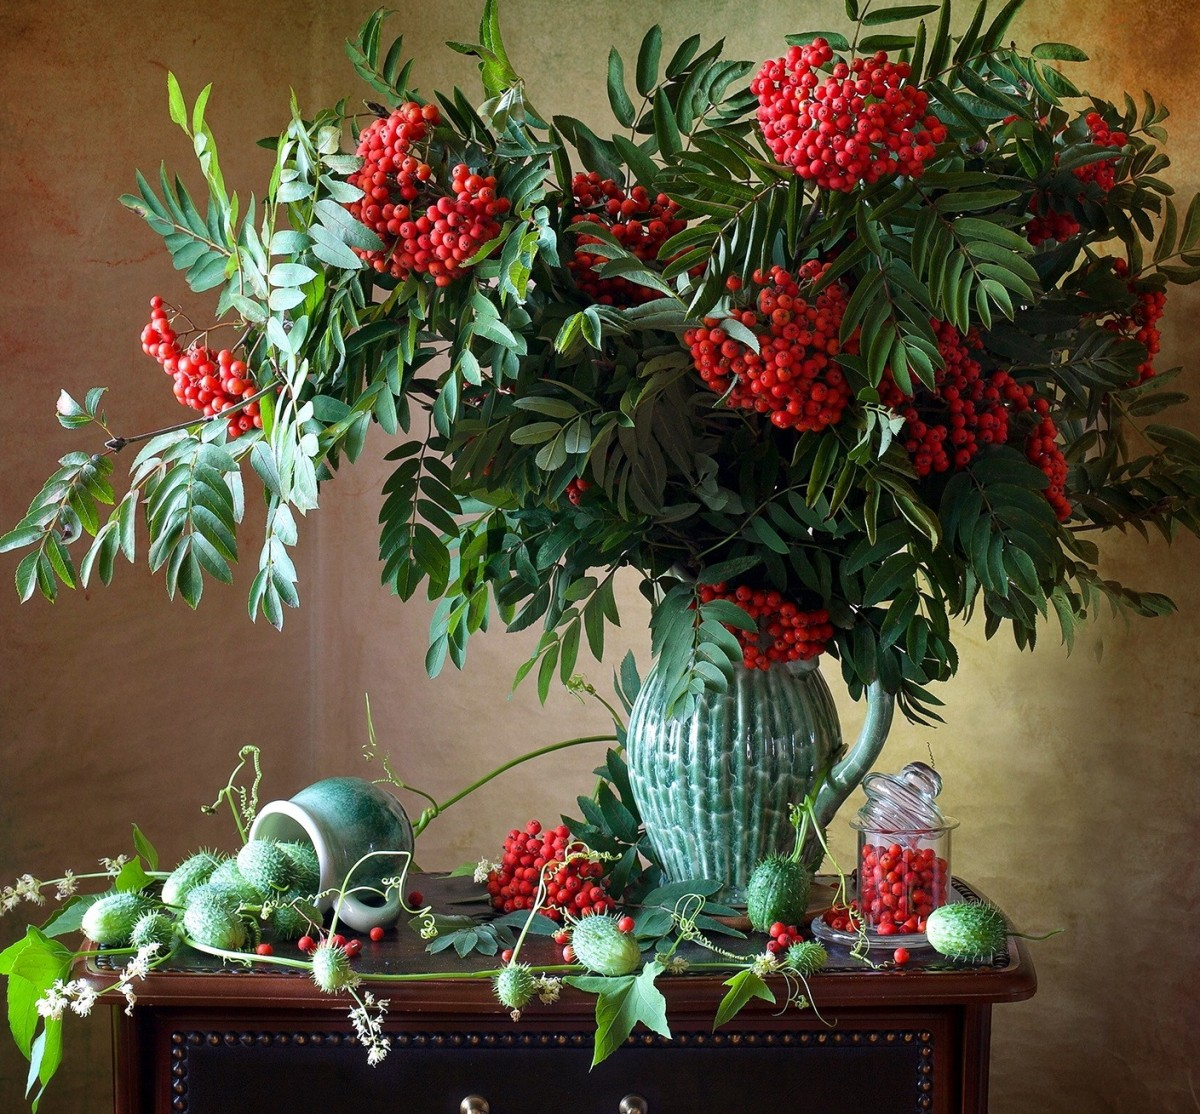 Jigsaw Puzzle Solve jigsaw puzzles online - Rowan in a vase